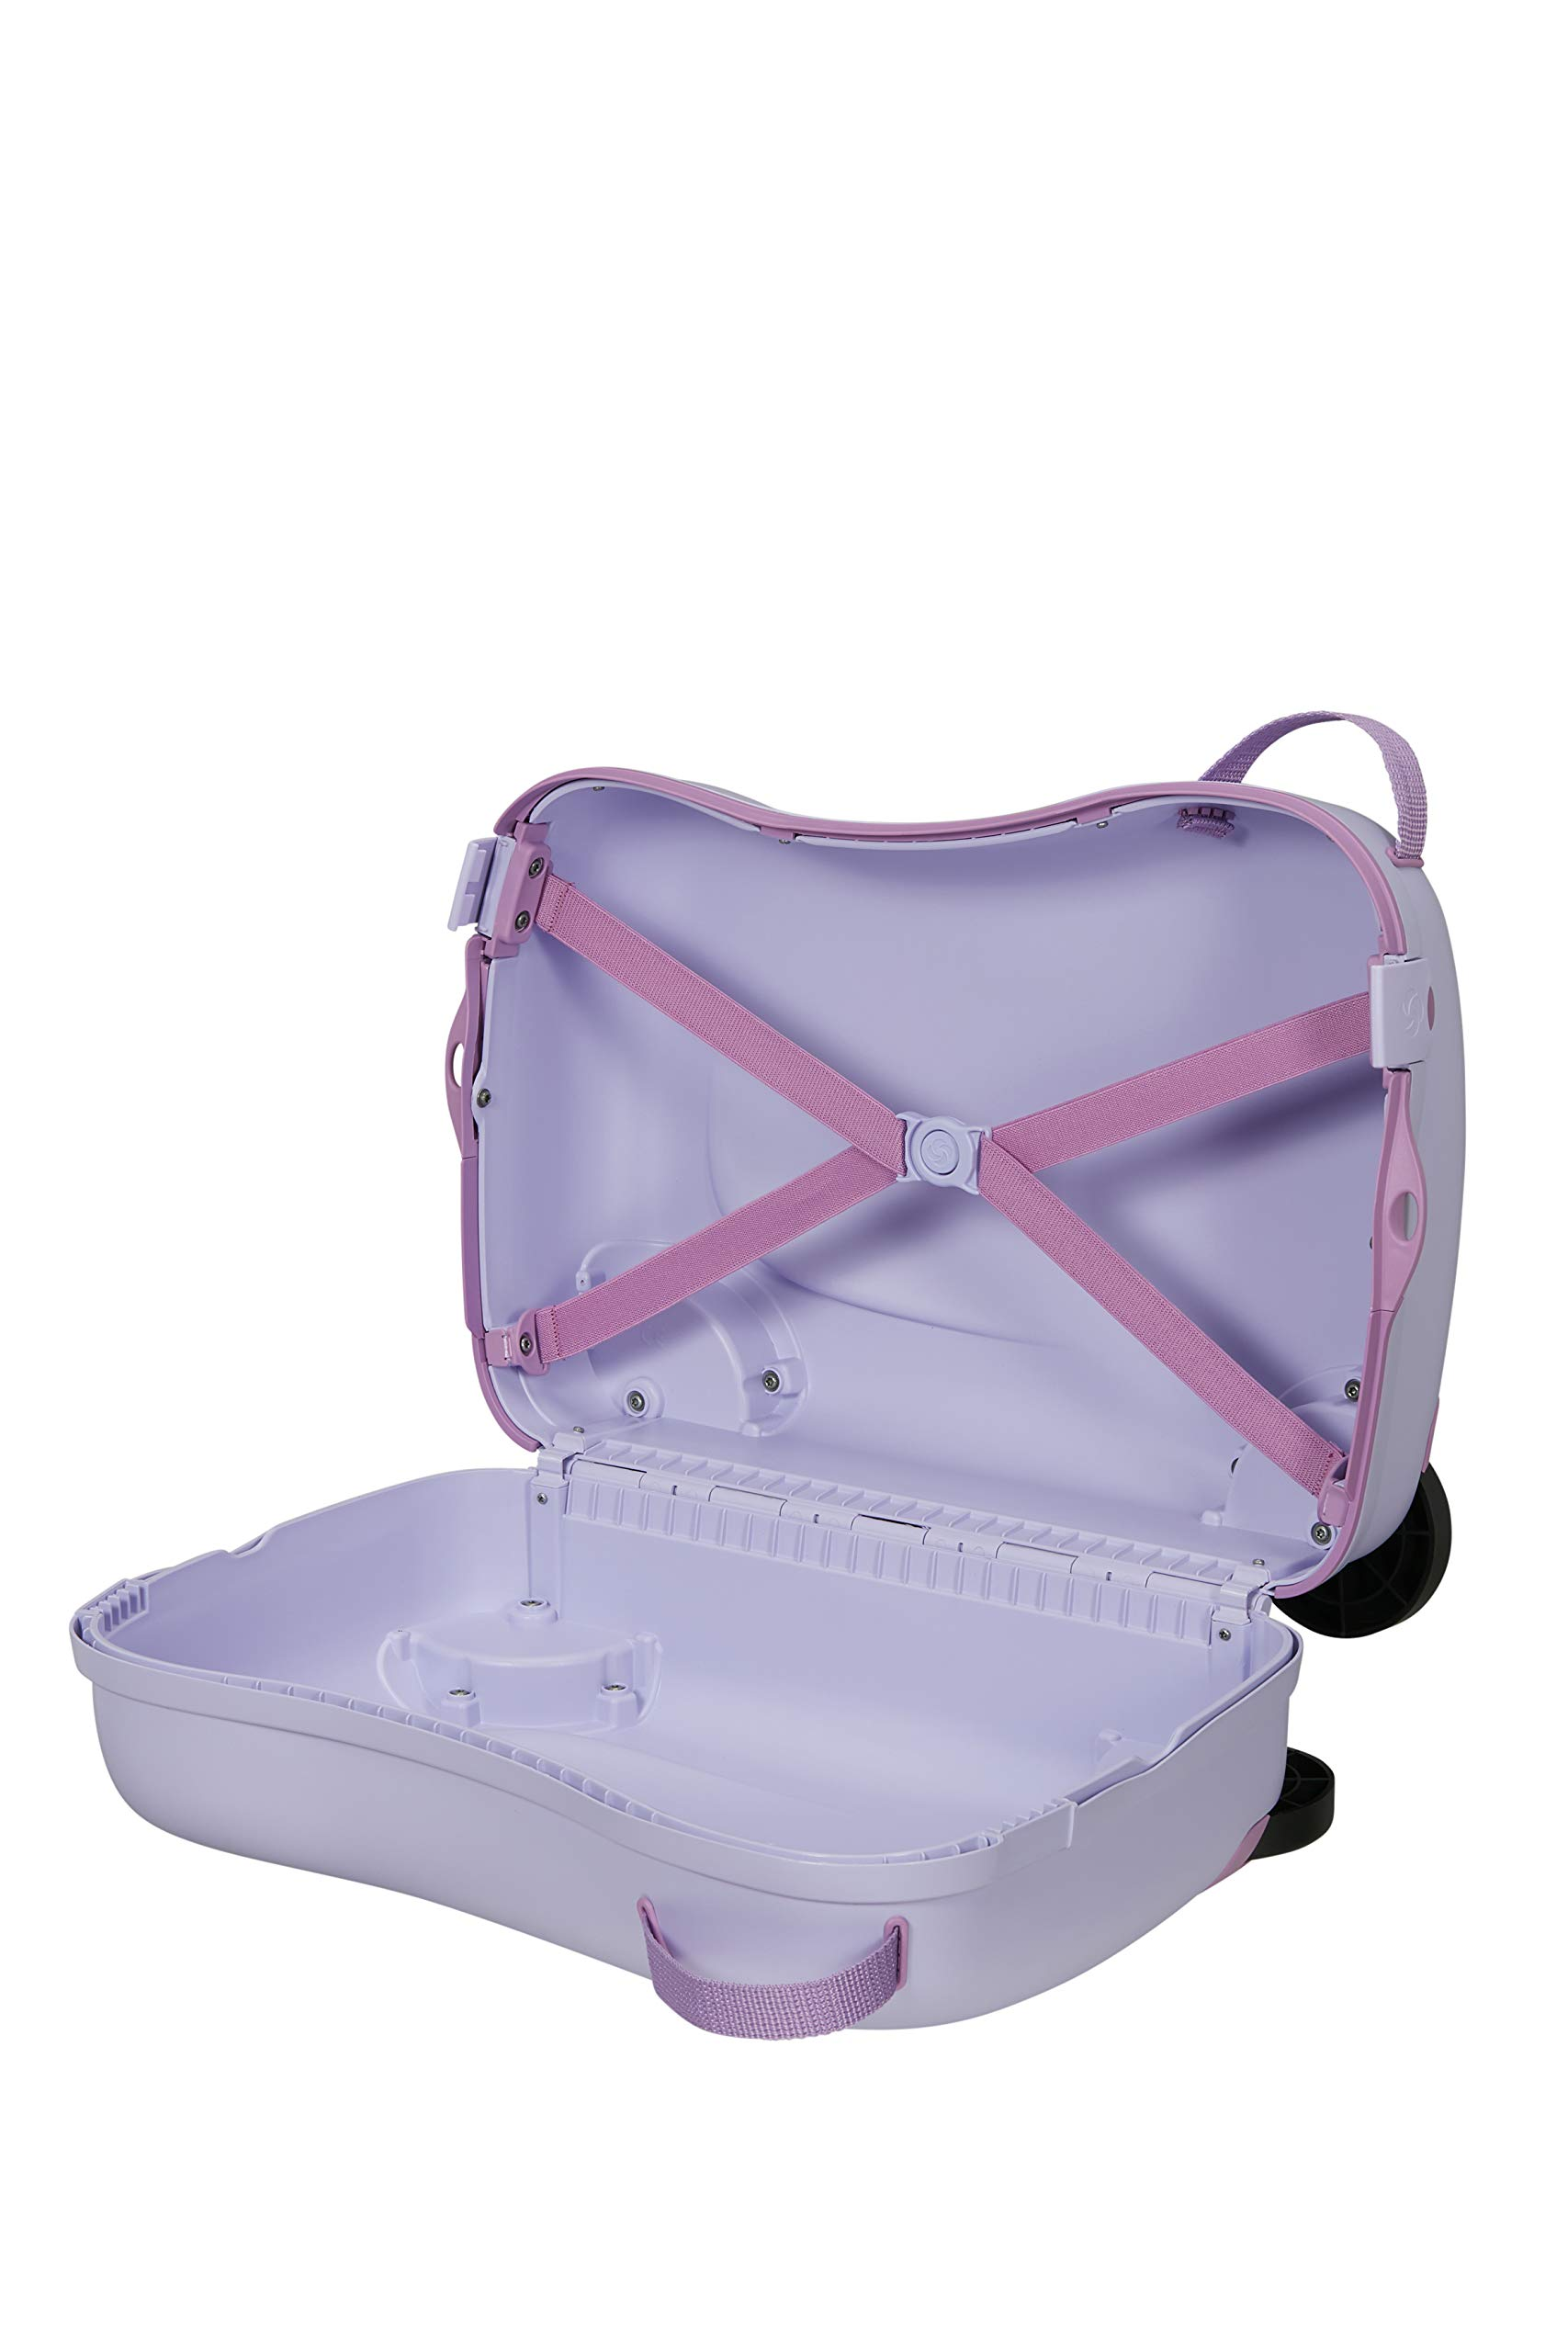 SAMSONITE Dream Rider – Suitcase, Equipaje Infantil